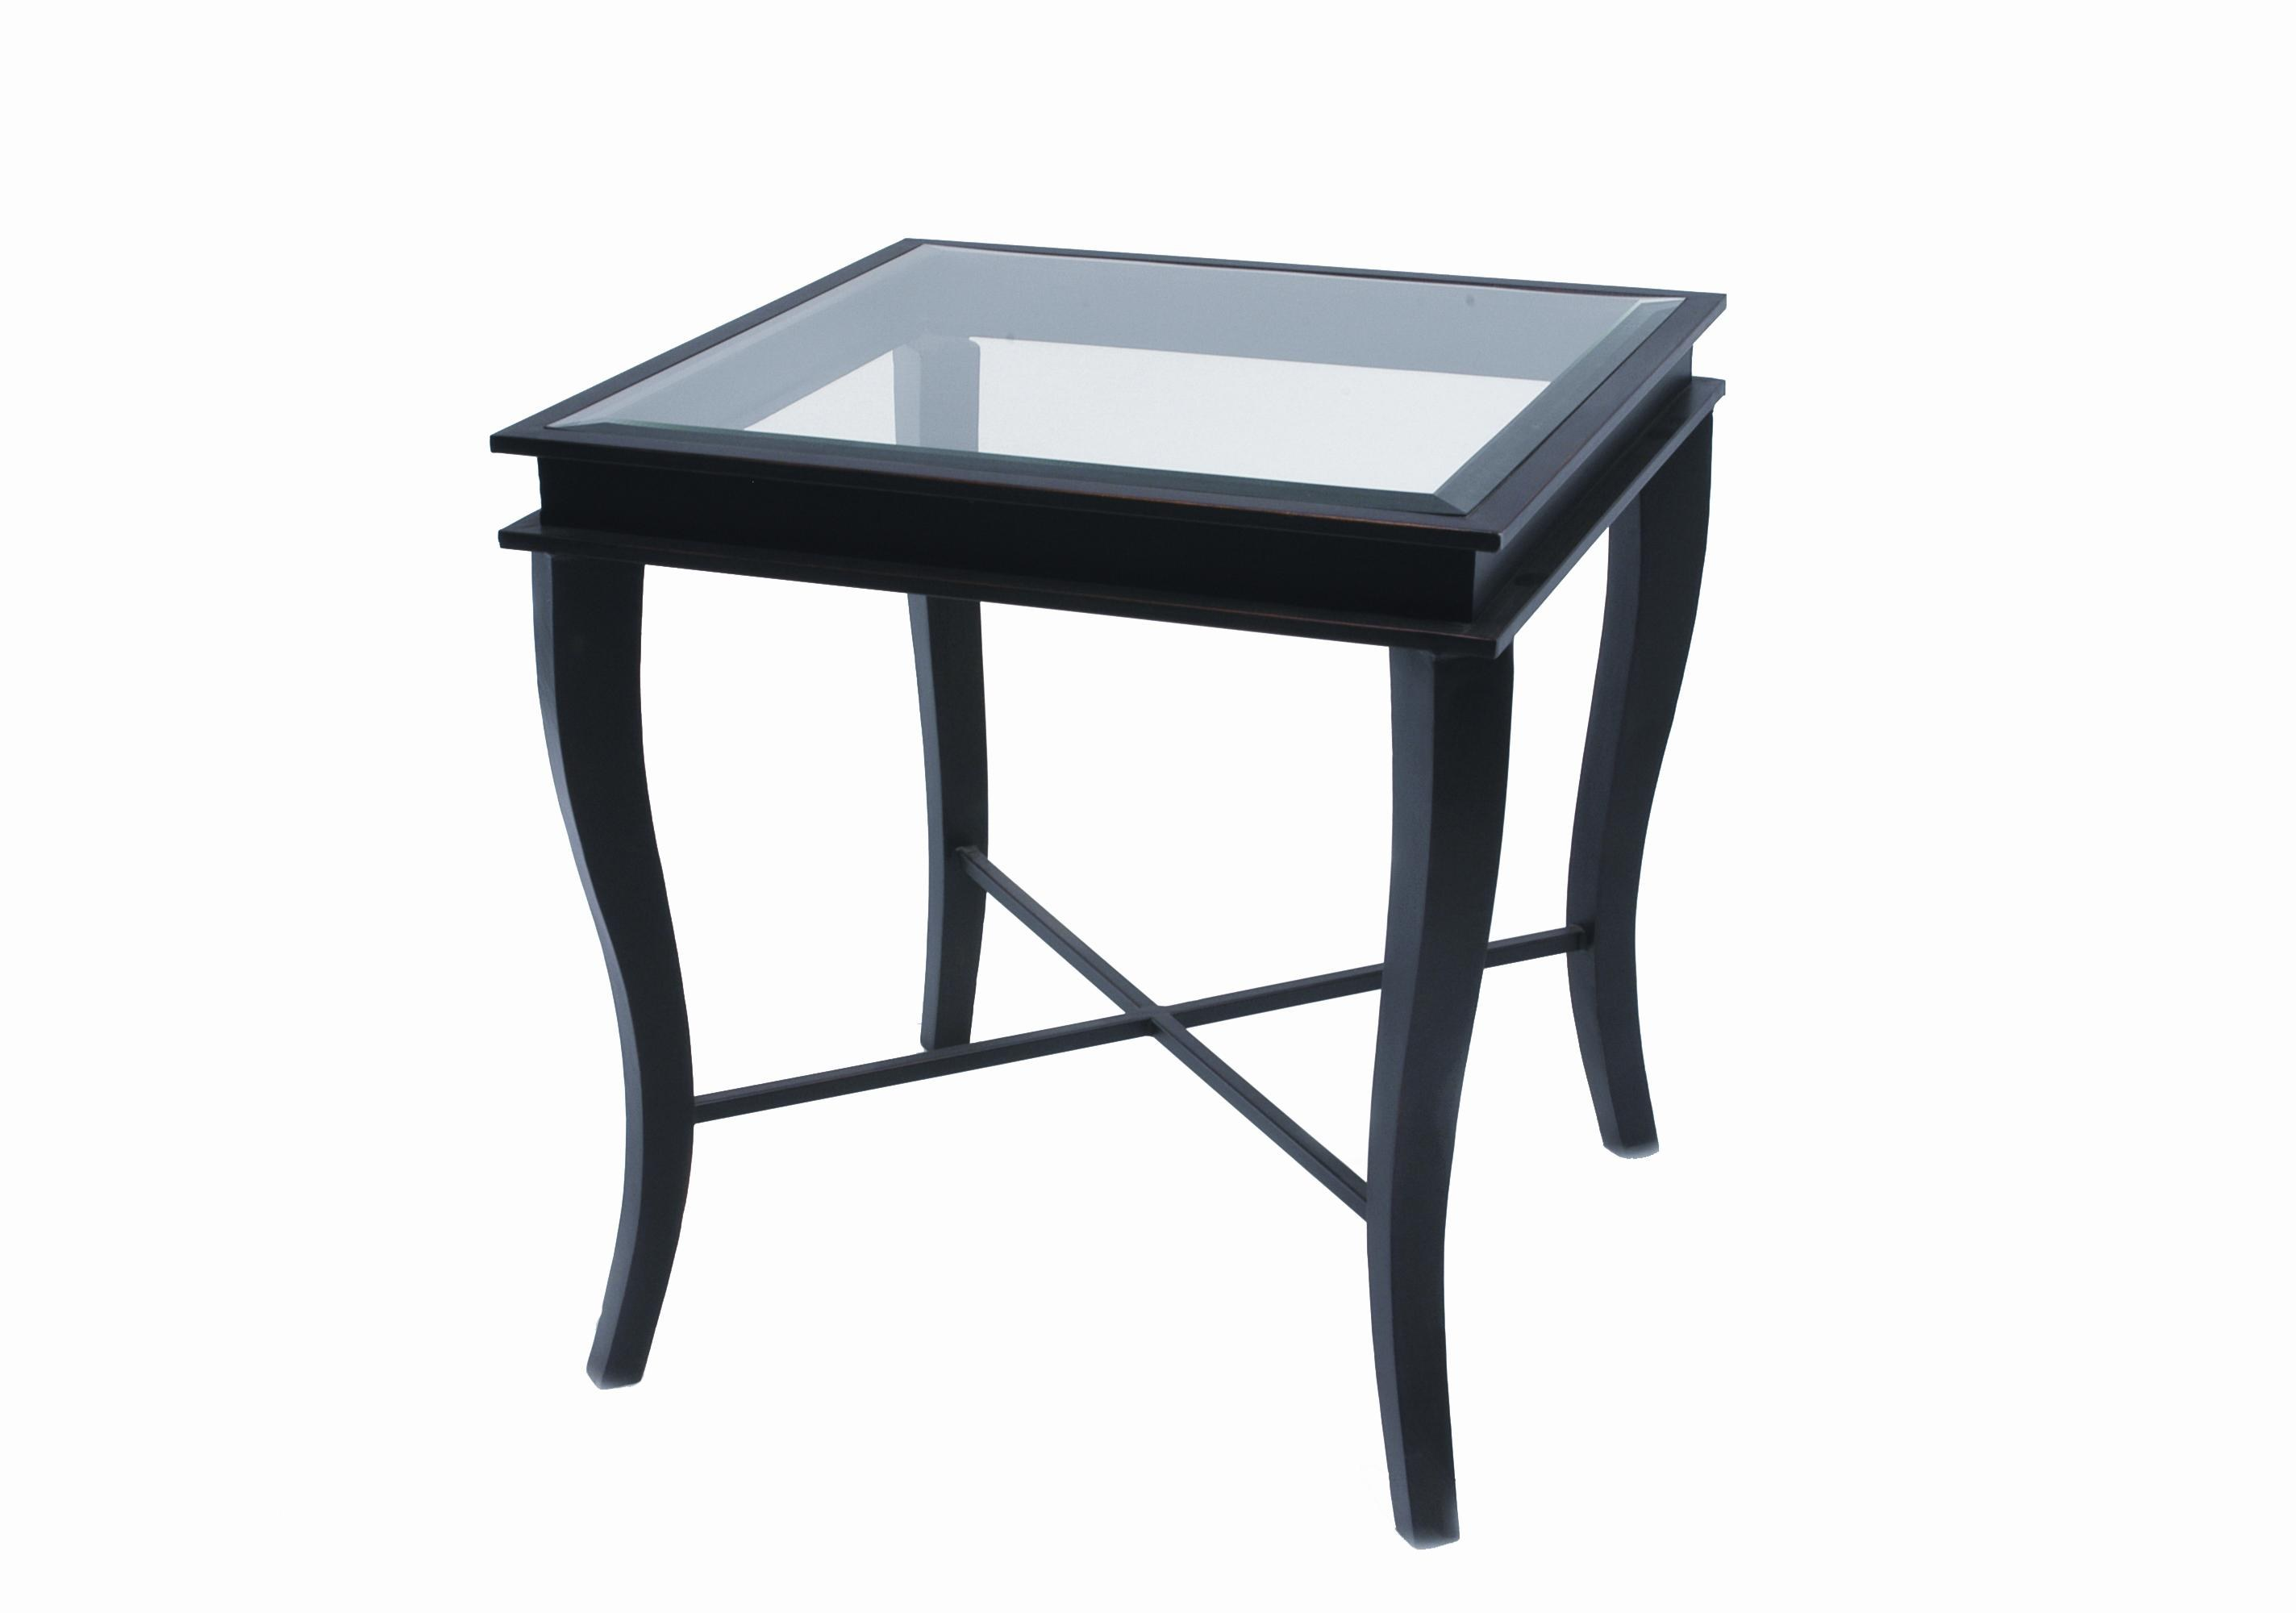 Square Glass End Tables Dania Square Glass End Table By Allan Copley Designs